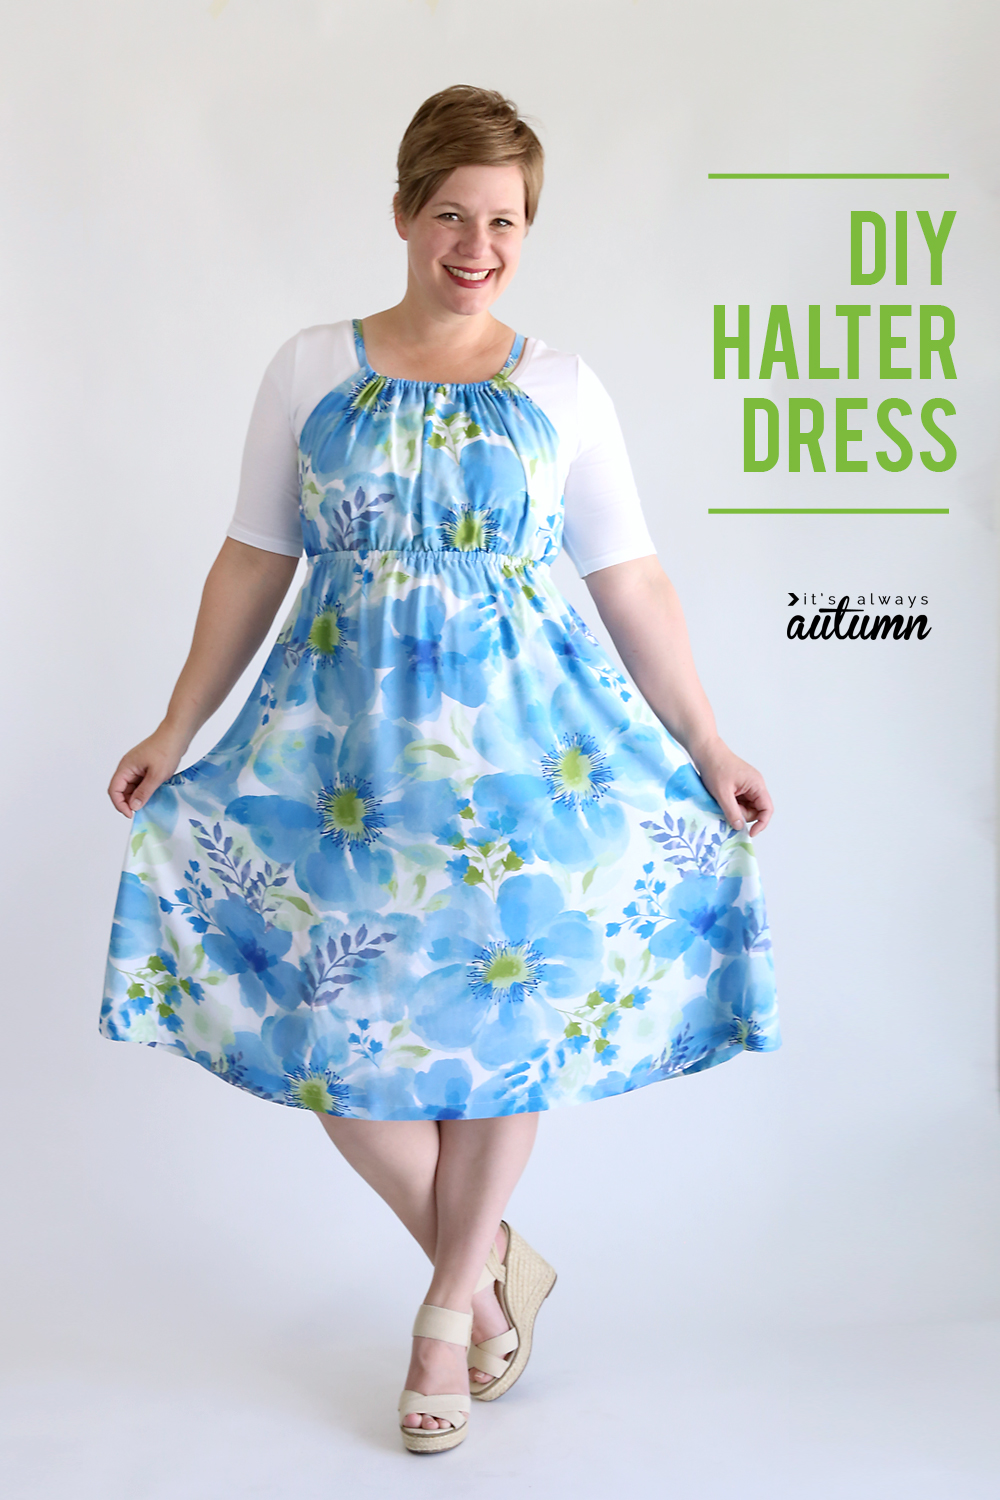 DIY halter dress sewing tutorial. Click through for easy sewing instructions.